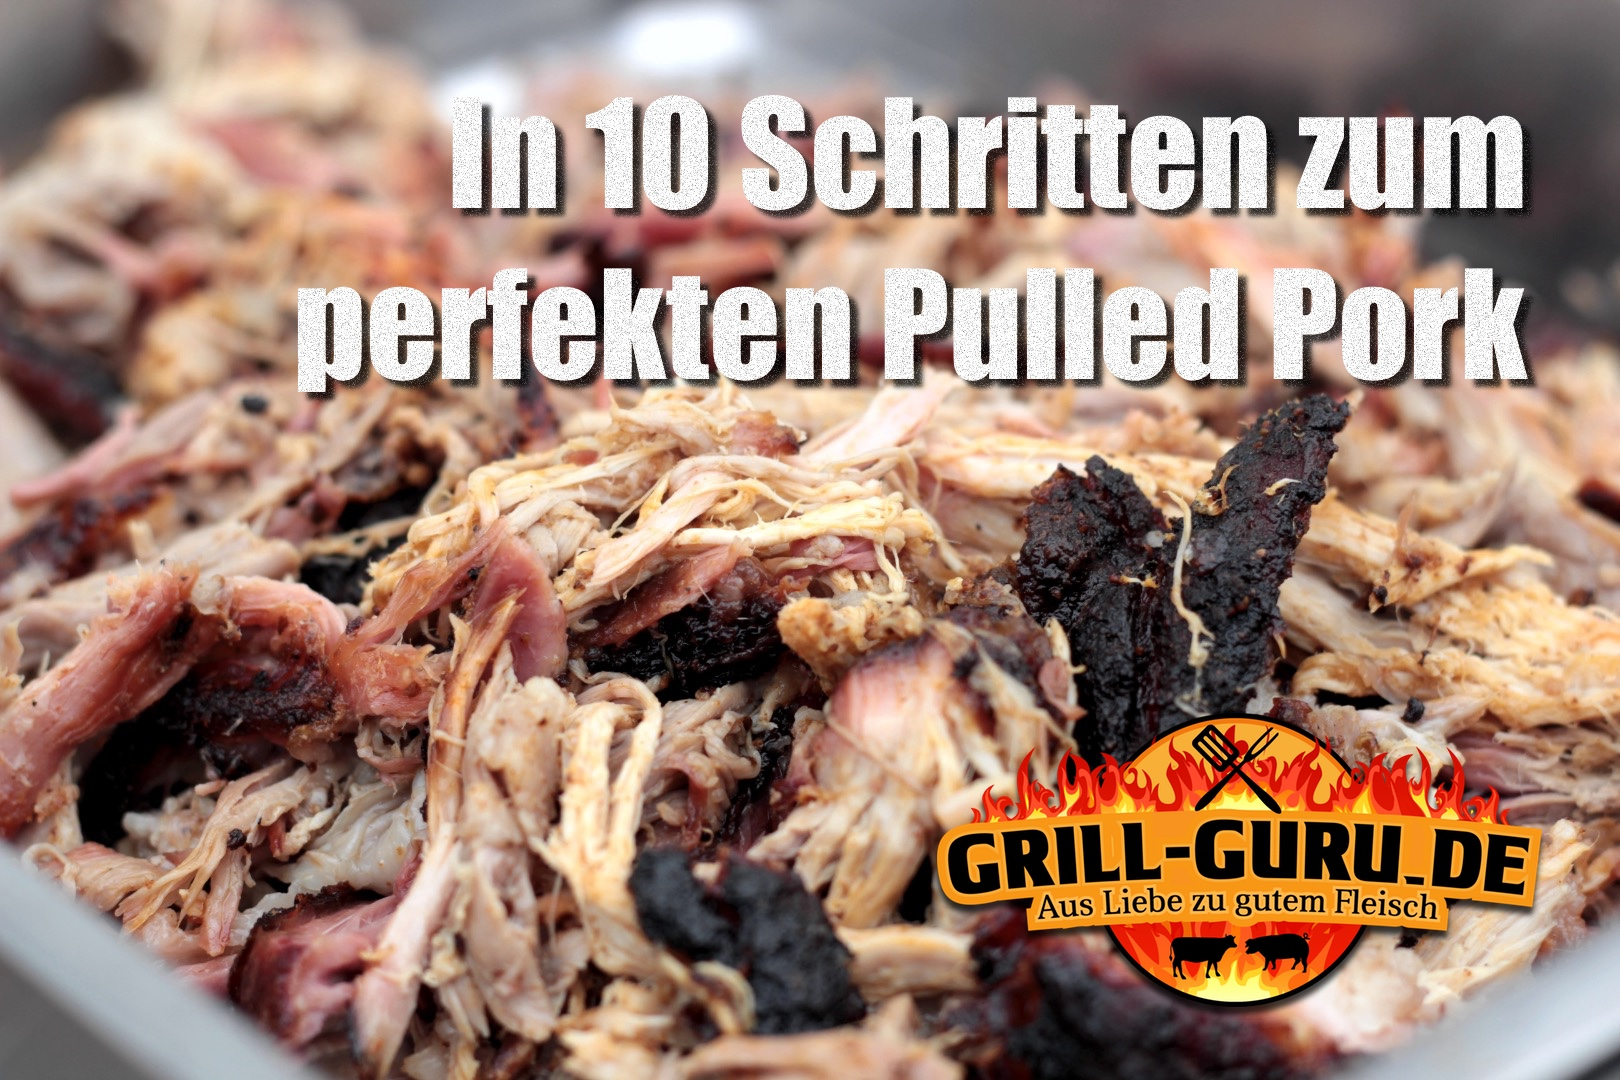 Pulled Pork Gasgrill Deutsch : 10 schritte zum perfekten pulled pork grill guru.de